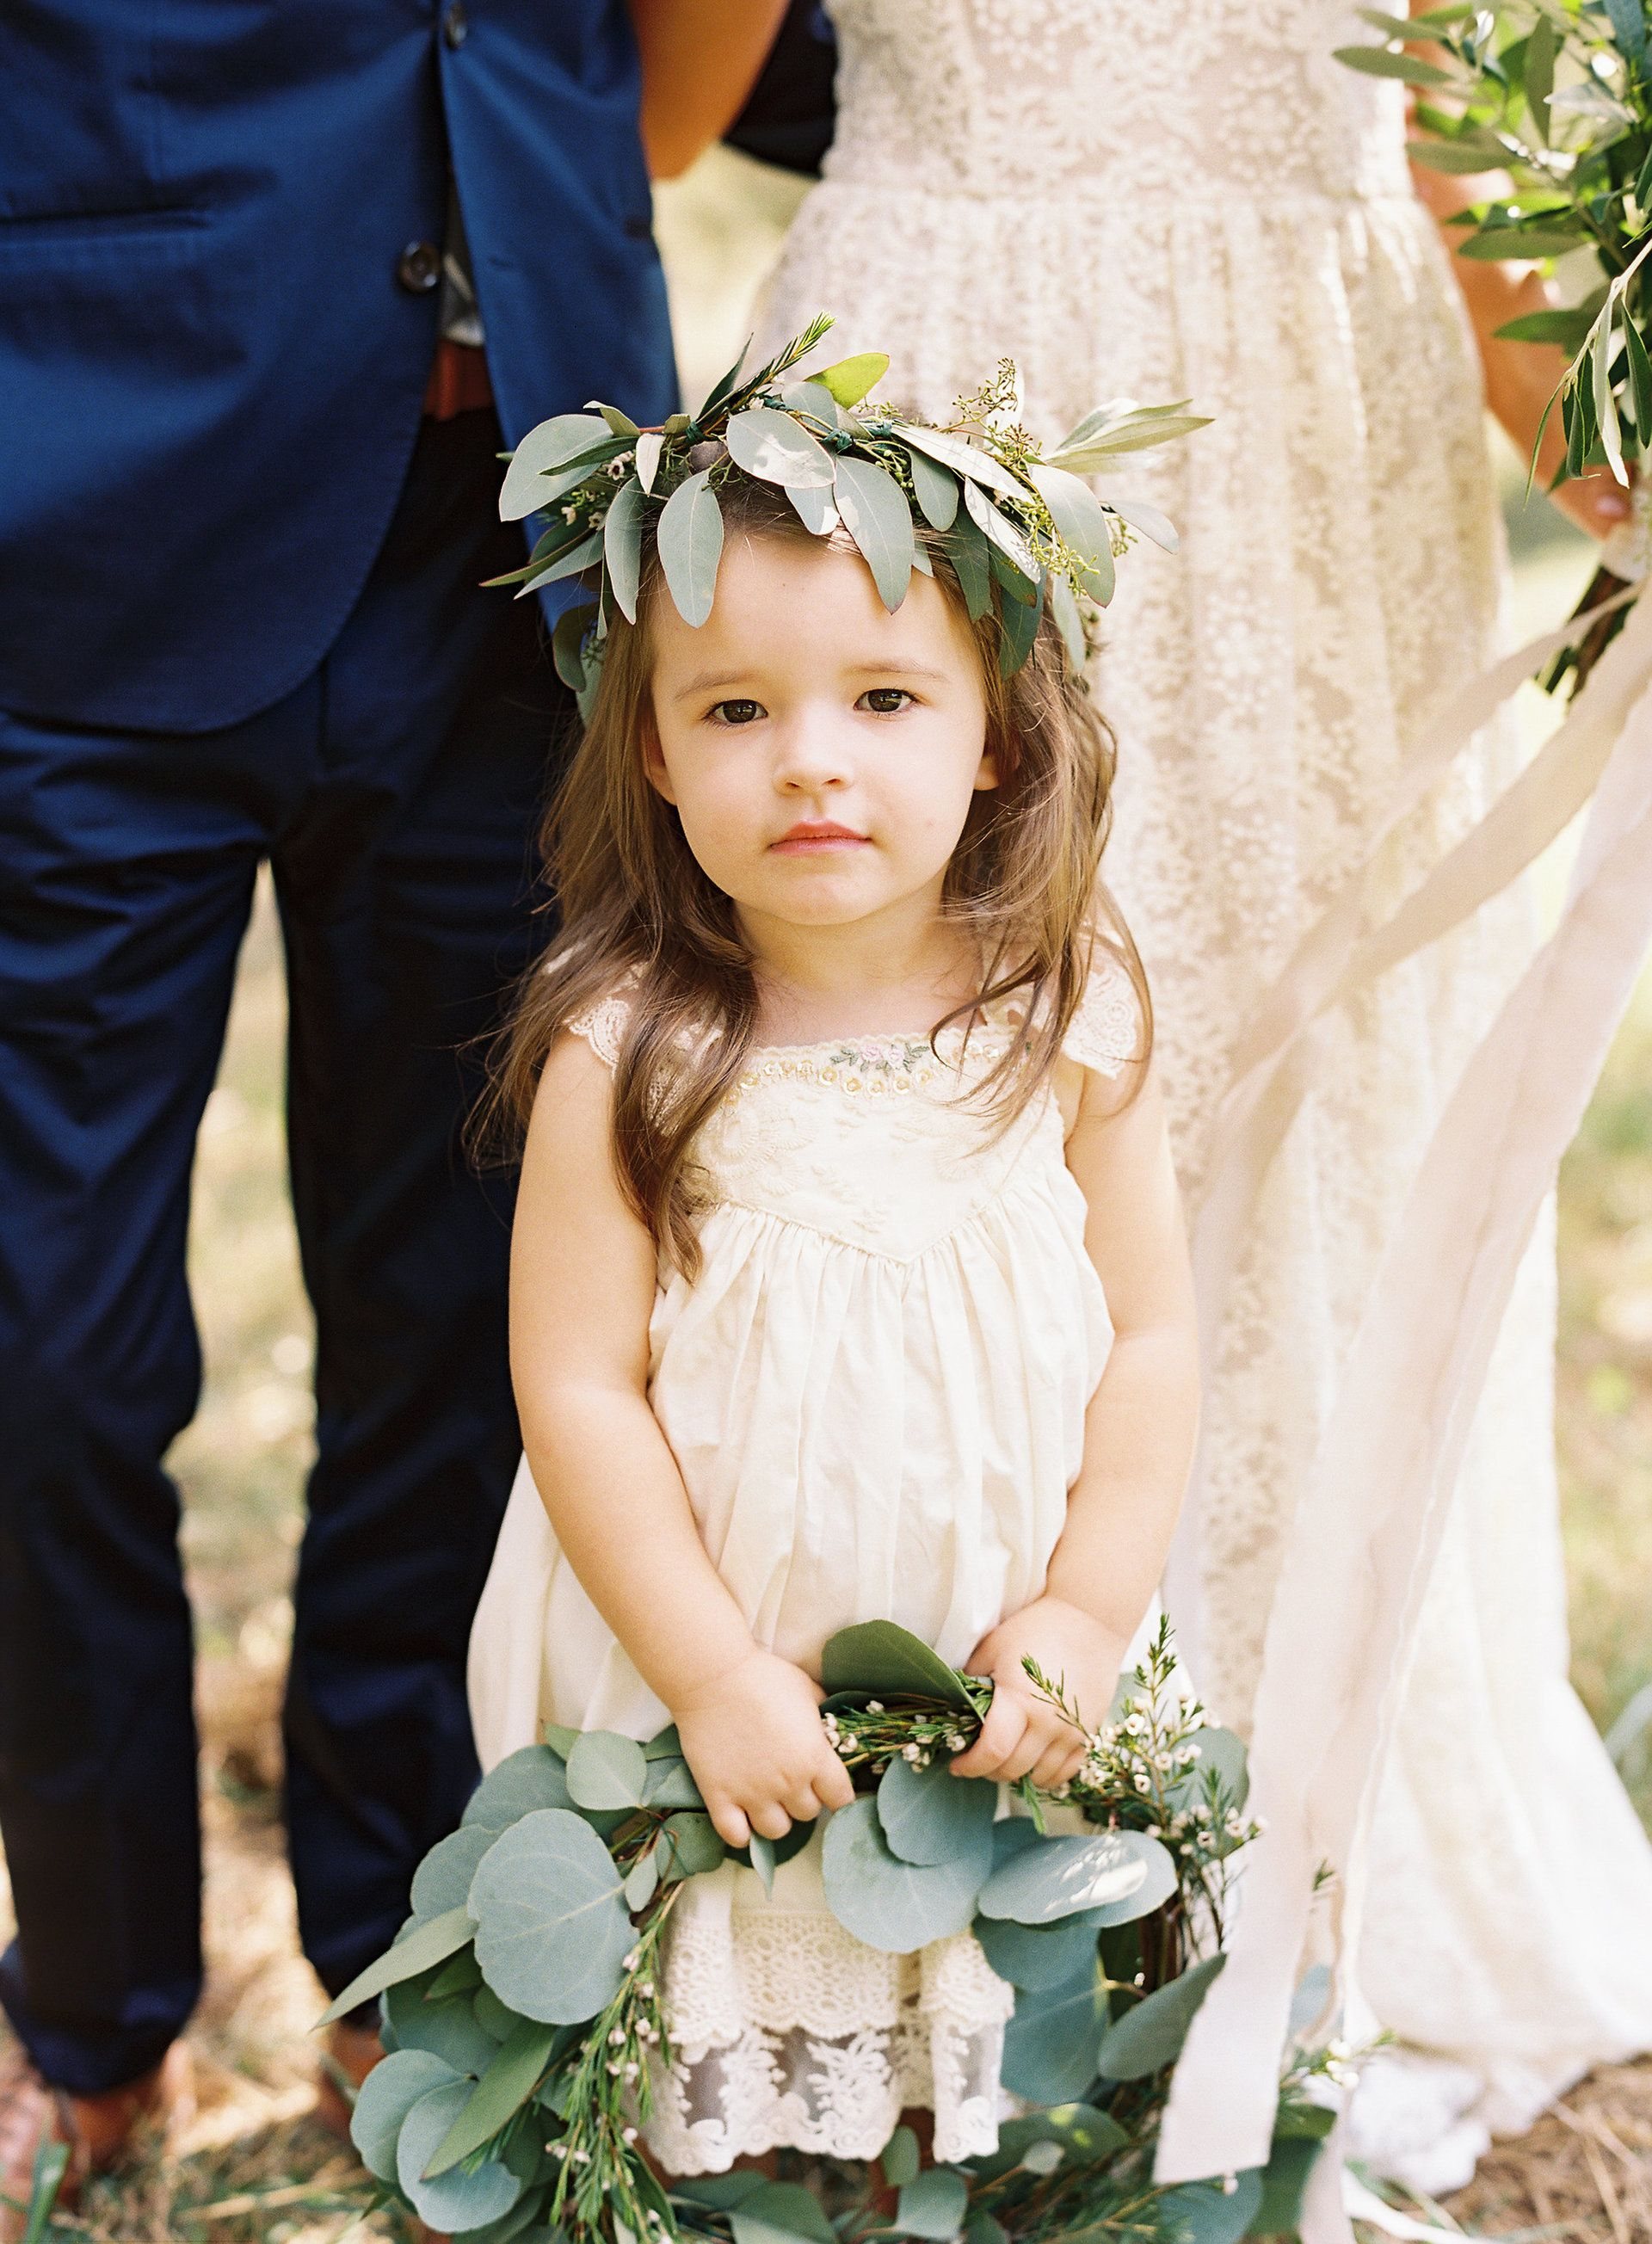 The smarter way to wed flower girls ring bearers pinterest flower girl wreath eucalyptus flower crown white dress natural wedding nathan westerfield izmirmasajfo